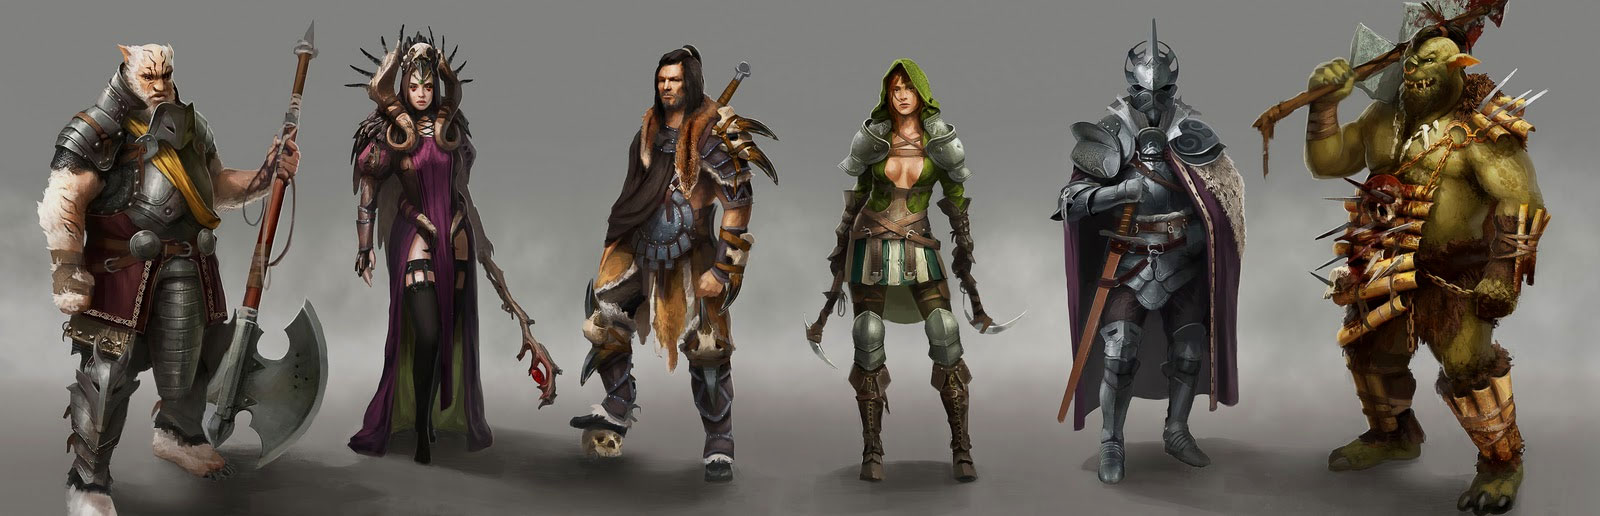 Image of Fantasy Characters